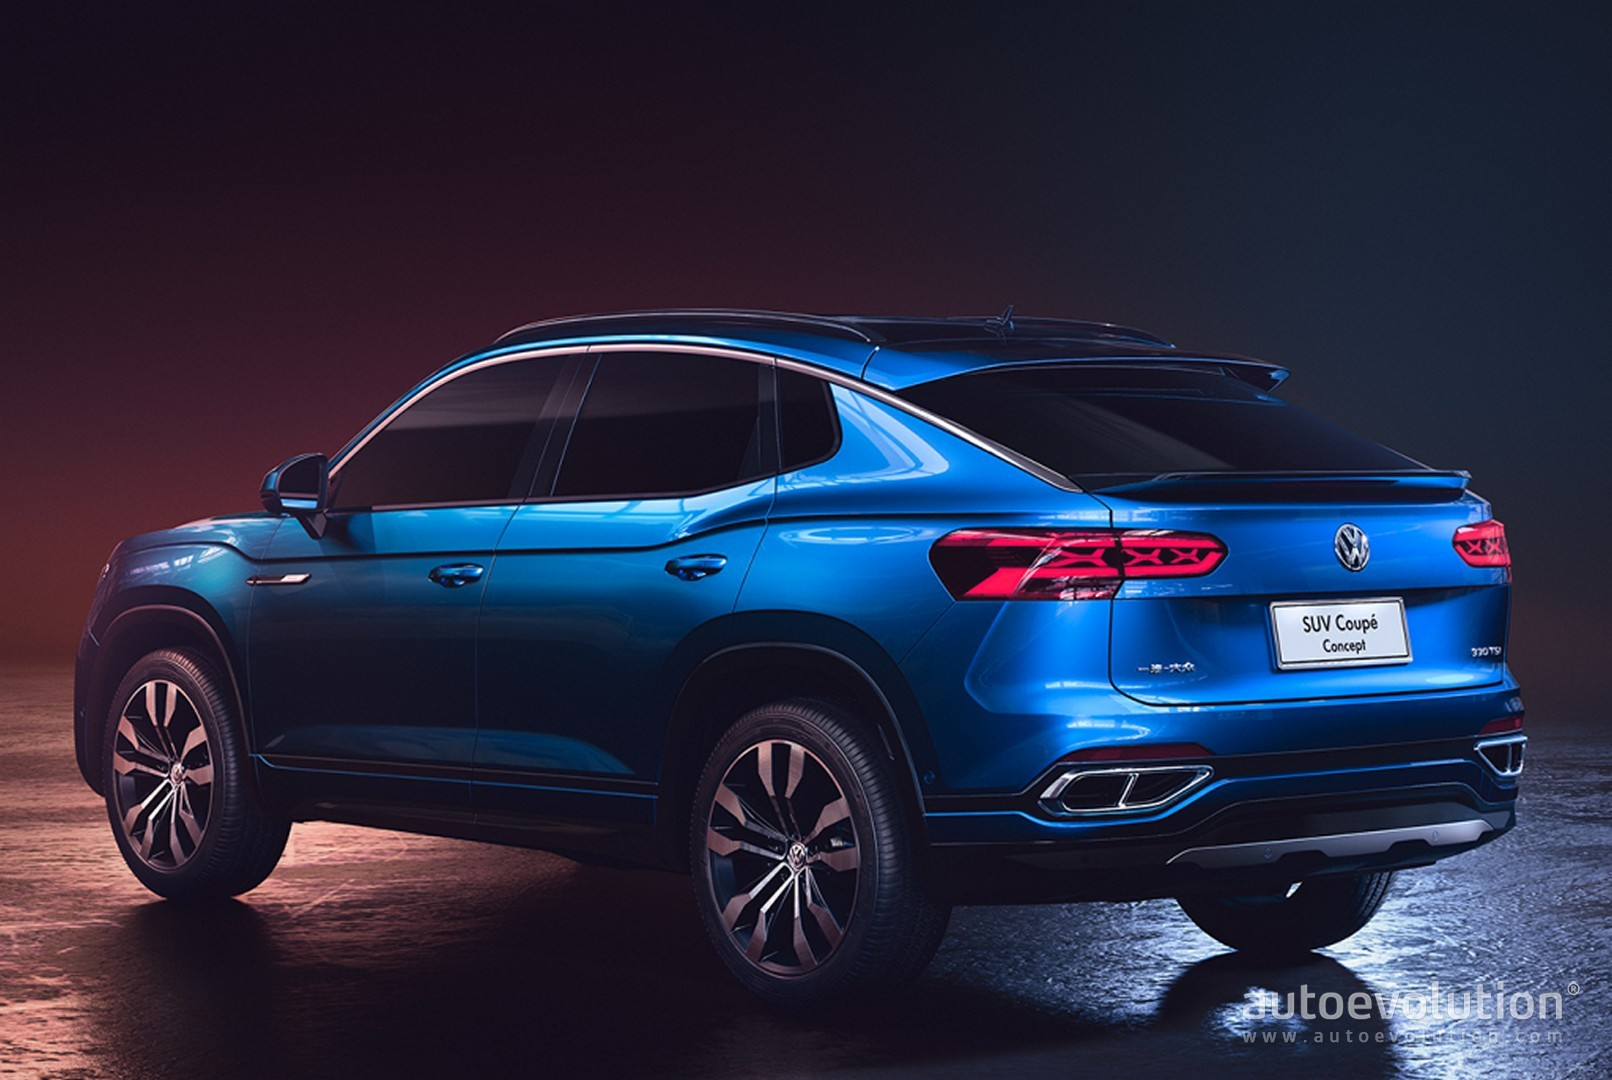 Volkswagen Teramont X (Atlas Coupe) and Possible Tiguan ...